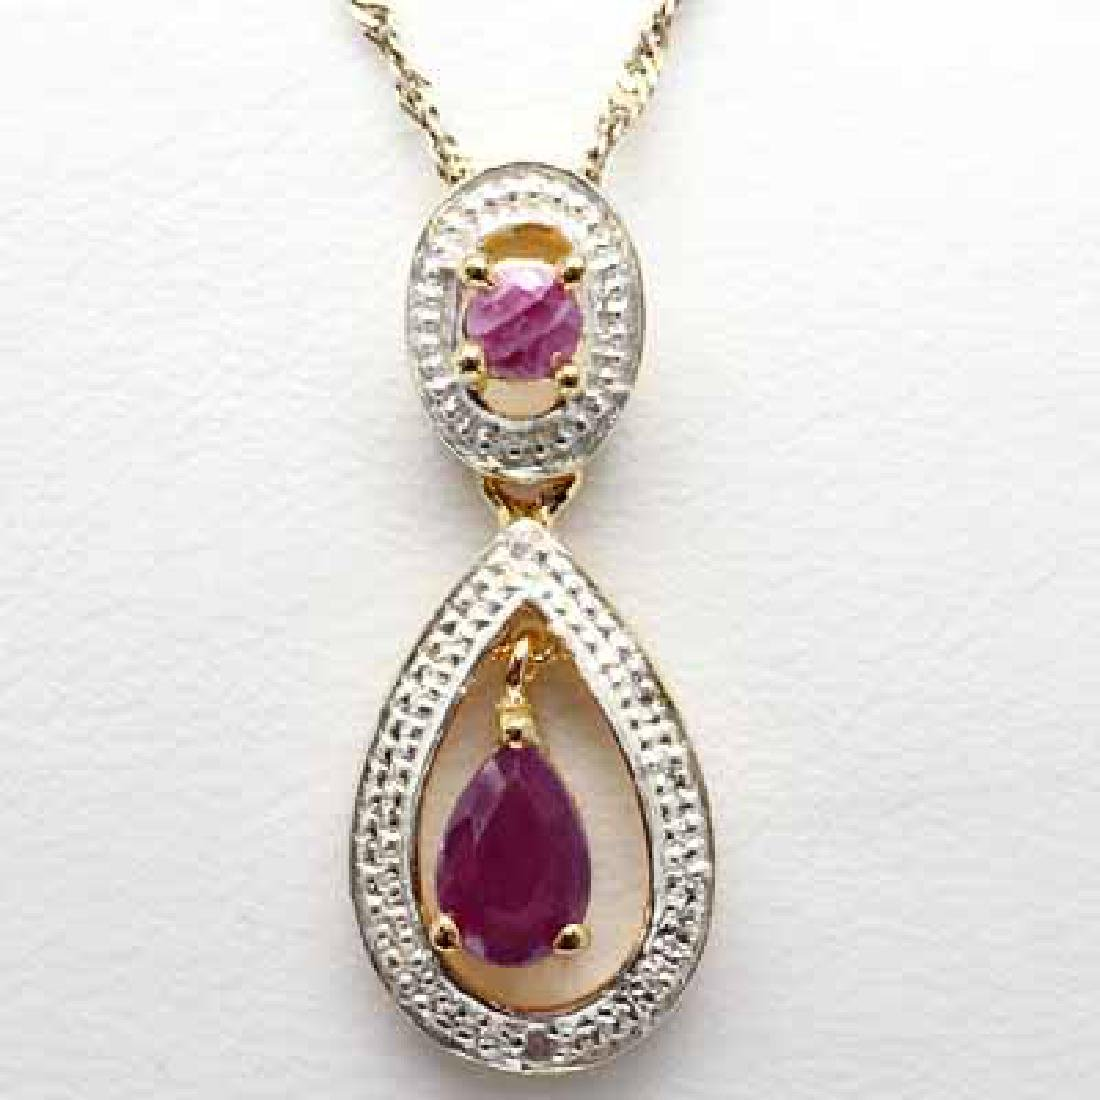 0.71 CARAT TW GENUINE RUBY & GENINE DIAMOND SET IN 24K